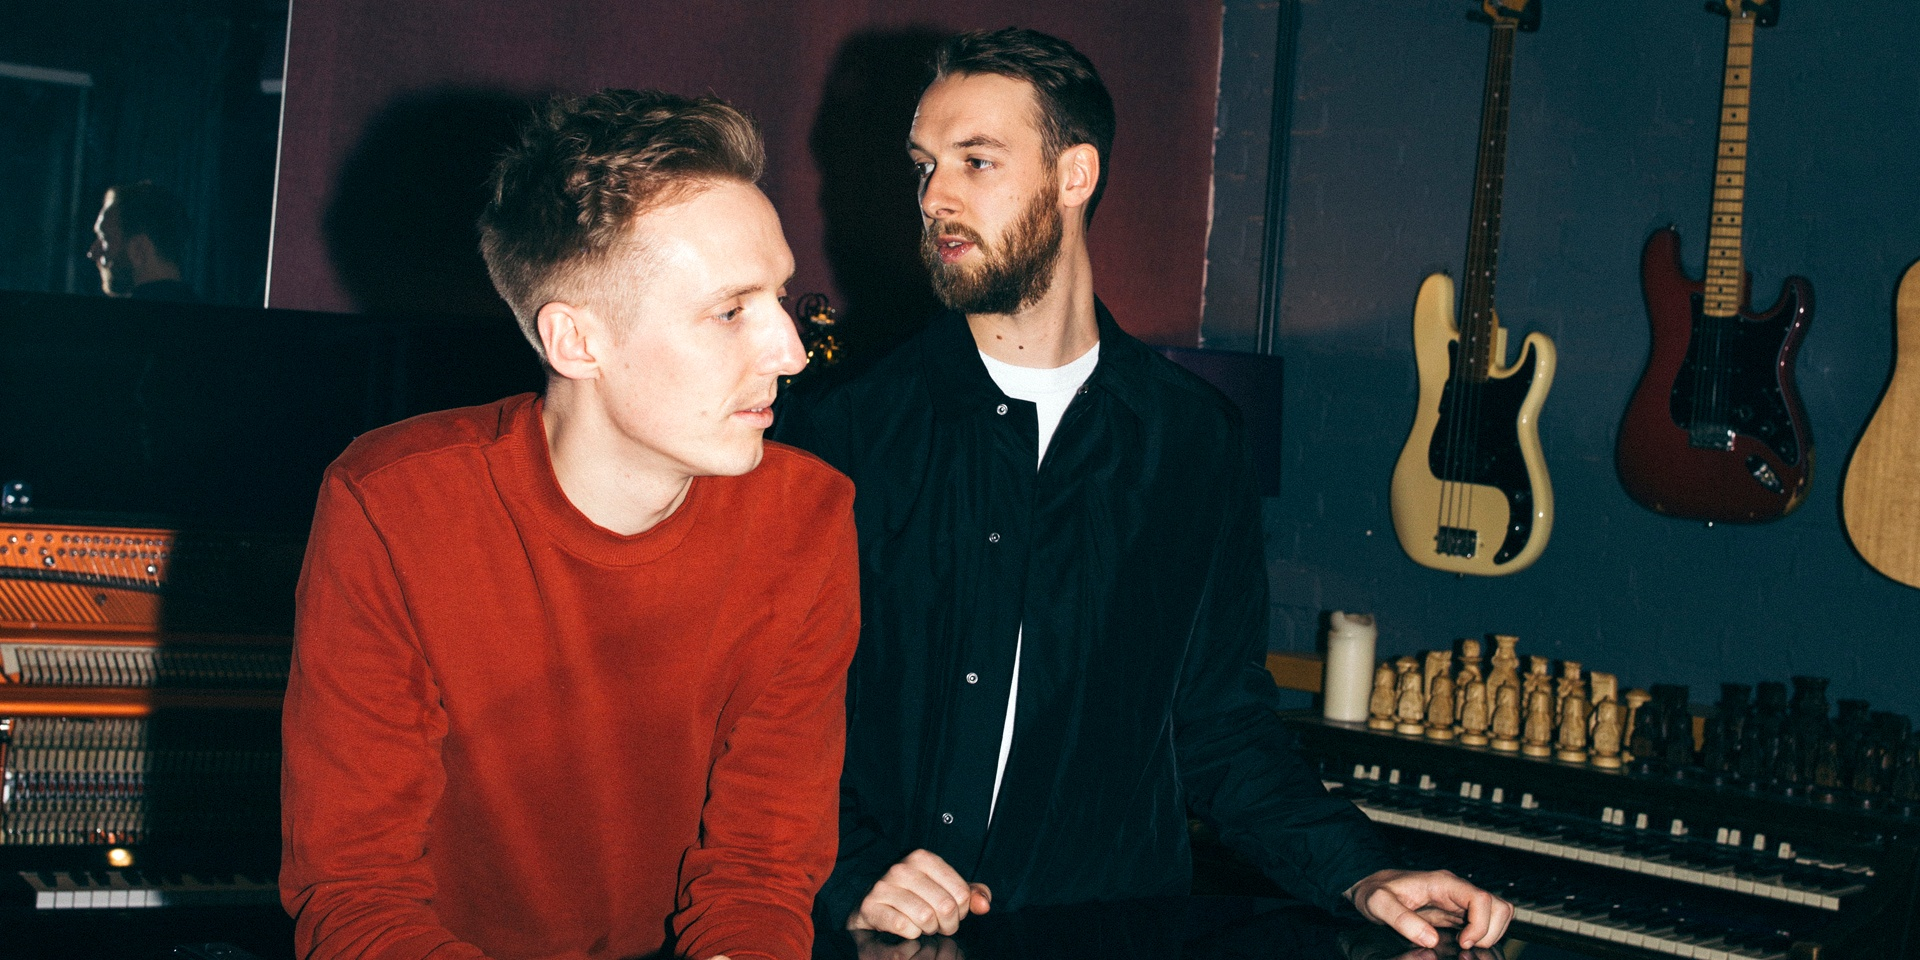 An interview with HONNE about their new album, their Singapore experience and their upcoming Asia tour